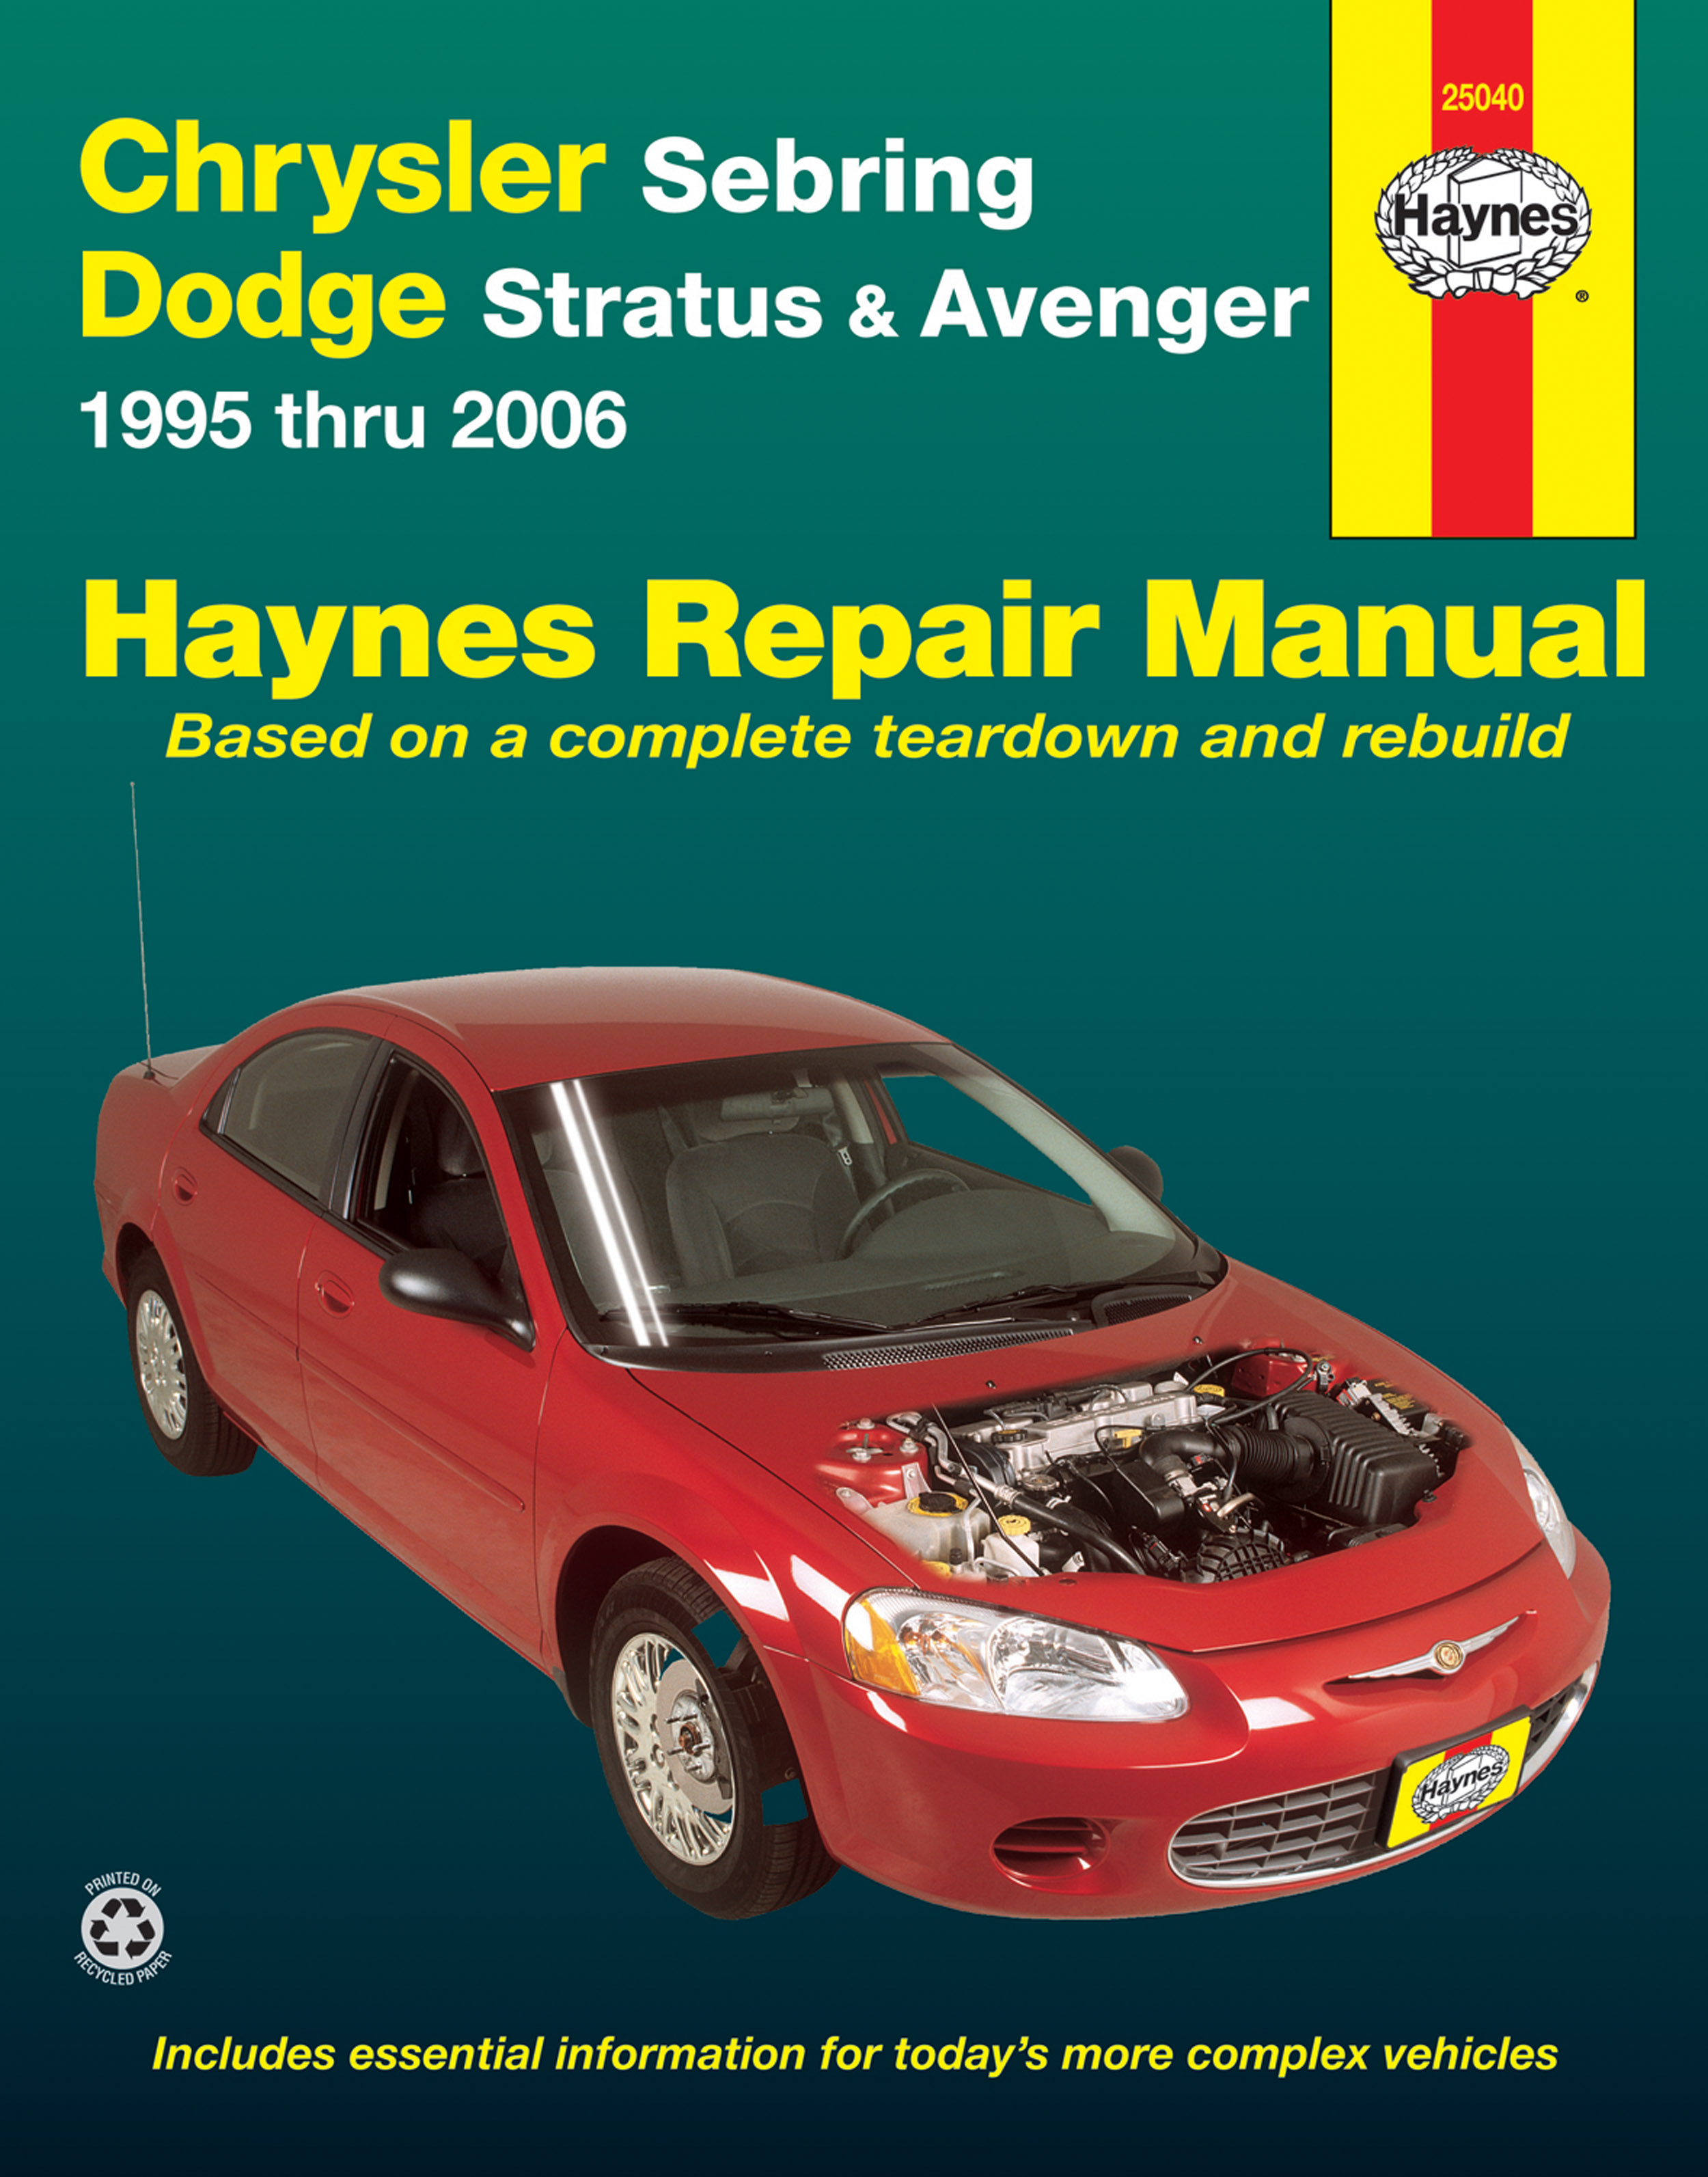 Chrysler Sebring Dodge Stratus Avenger 95 06 Haynes Repair 1995 Wiring Diagram Manual Usa